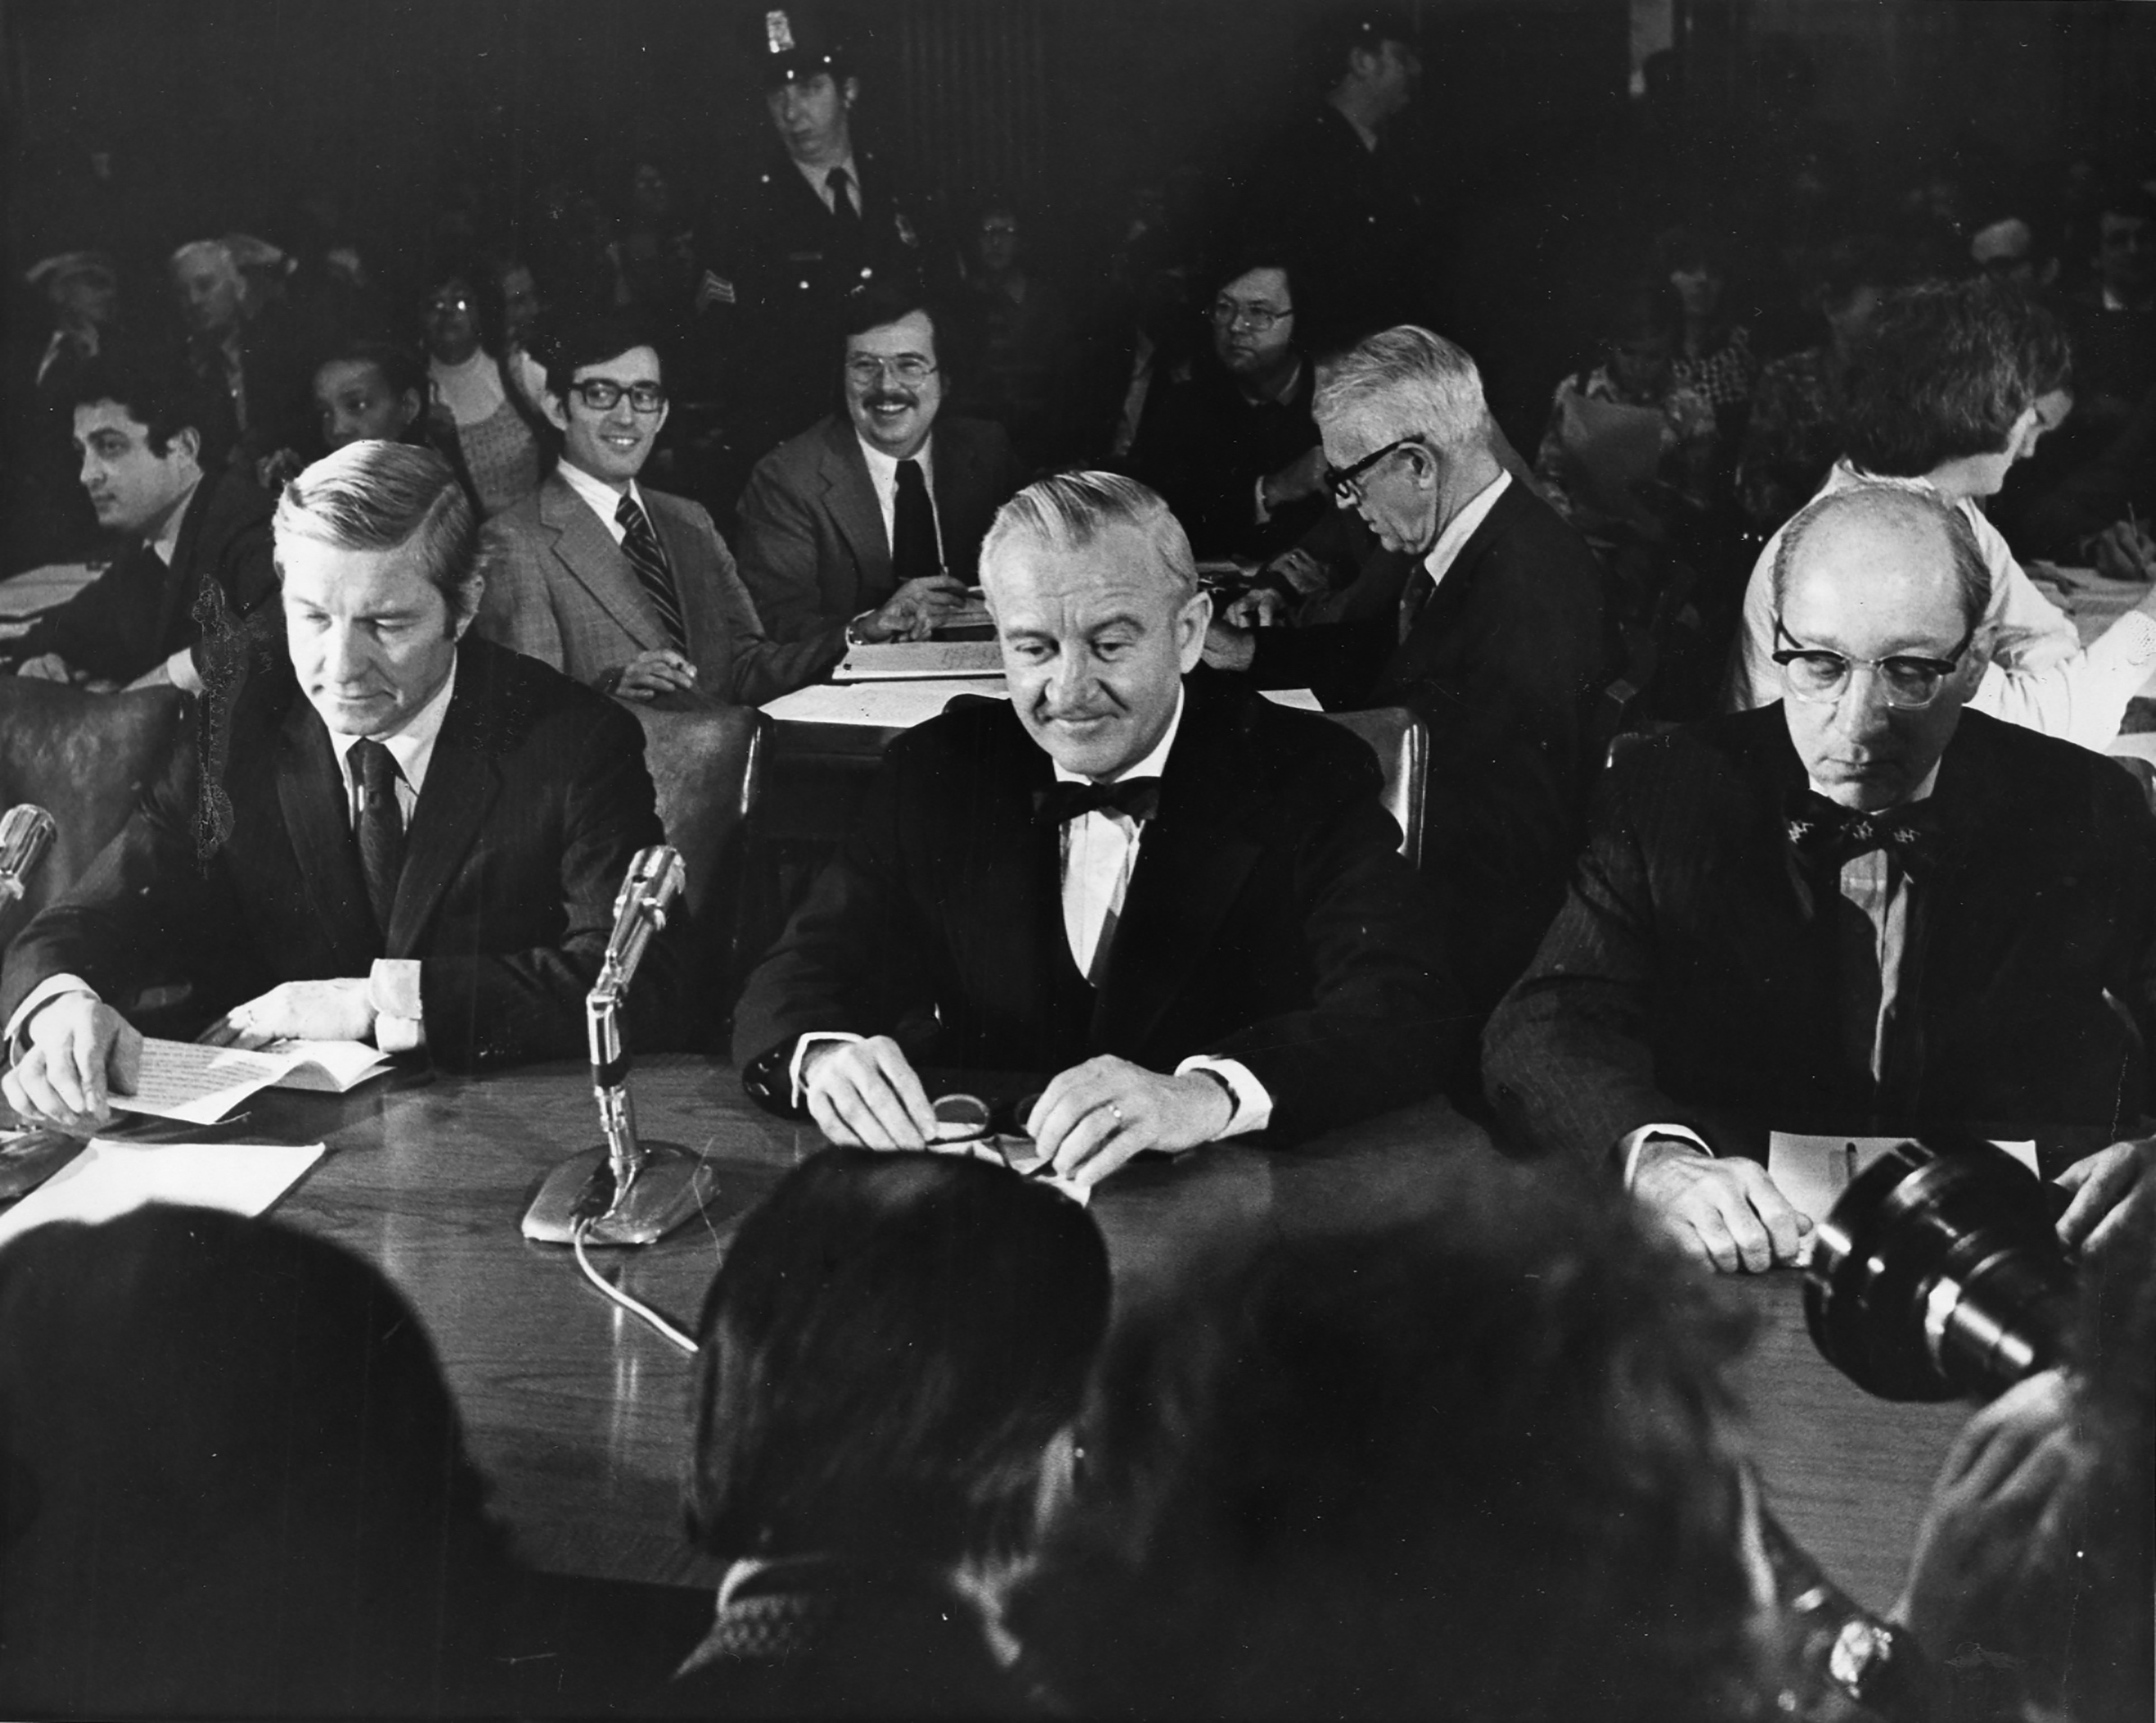 Supreme Court nominee John Paul Stevens is flanked by Sen. Charles Percy, left, and Attorney General Edward Levi at a confirmation hearing before the Senate Judiciary Committee in Washington, D.C., on Dec. 8, 1975.